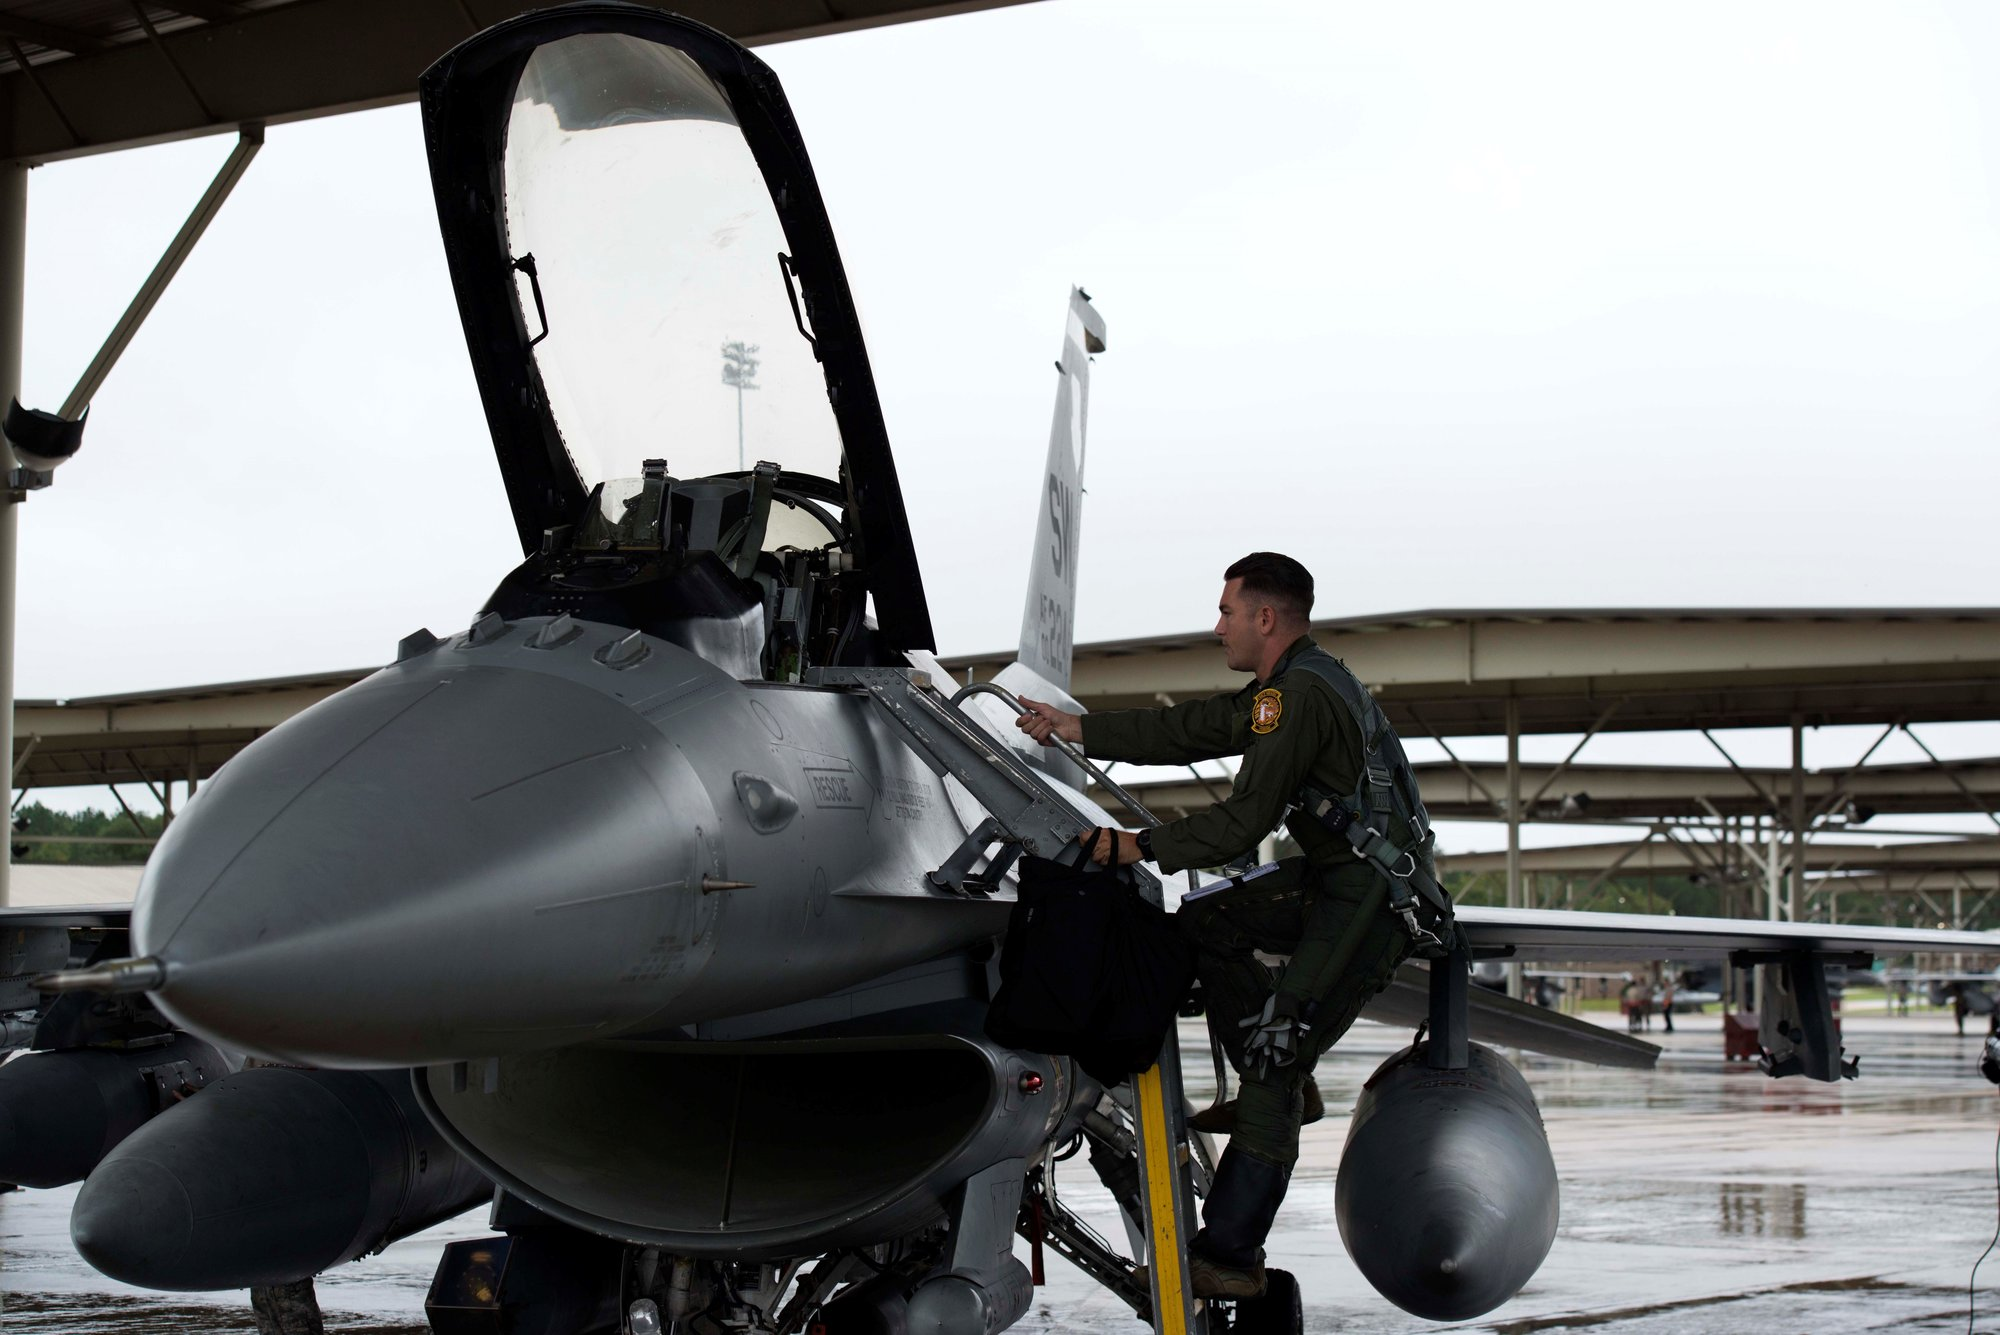 A U.S. Air Force pilot assigned to the 79th Fighter Squadron climbs into an F-16 Fighting Falcon at Shaw Air Force Base on Wednesday, Oct. 10. Pilots from the 55th, 77th and 79th FSs evacuated Shaw's jets to avoid possible damage from Hurricane Michael.